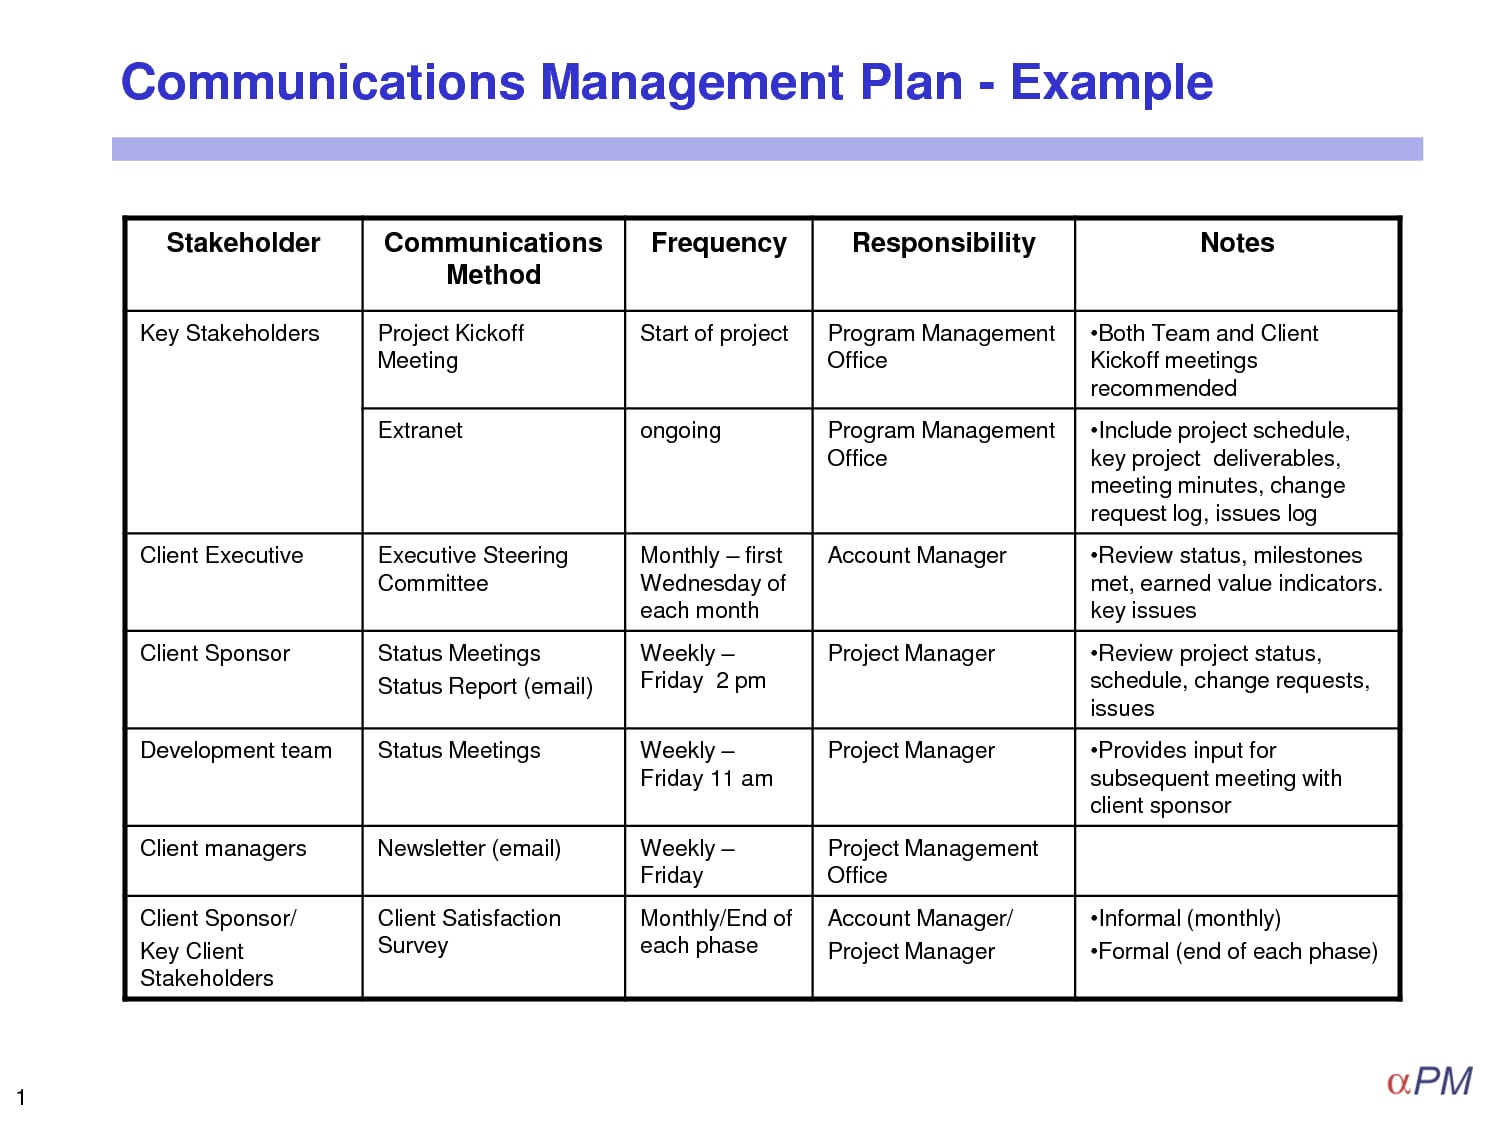 10 crisis management plan templates free sample example format.